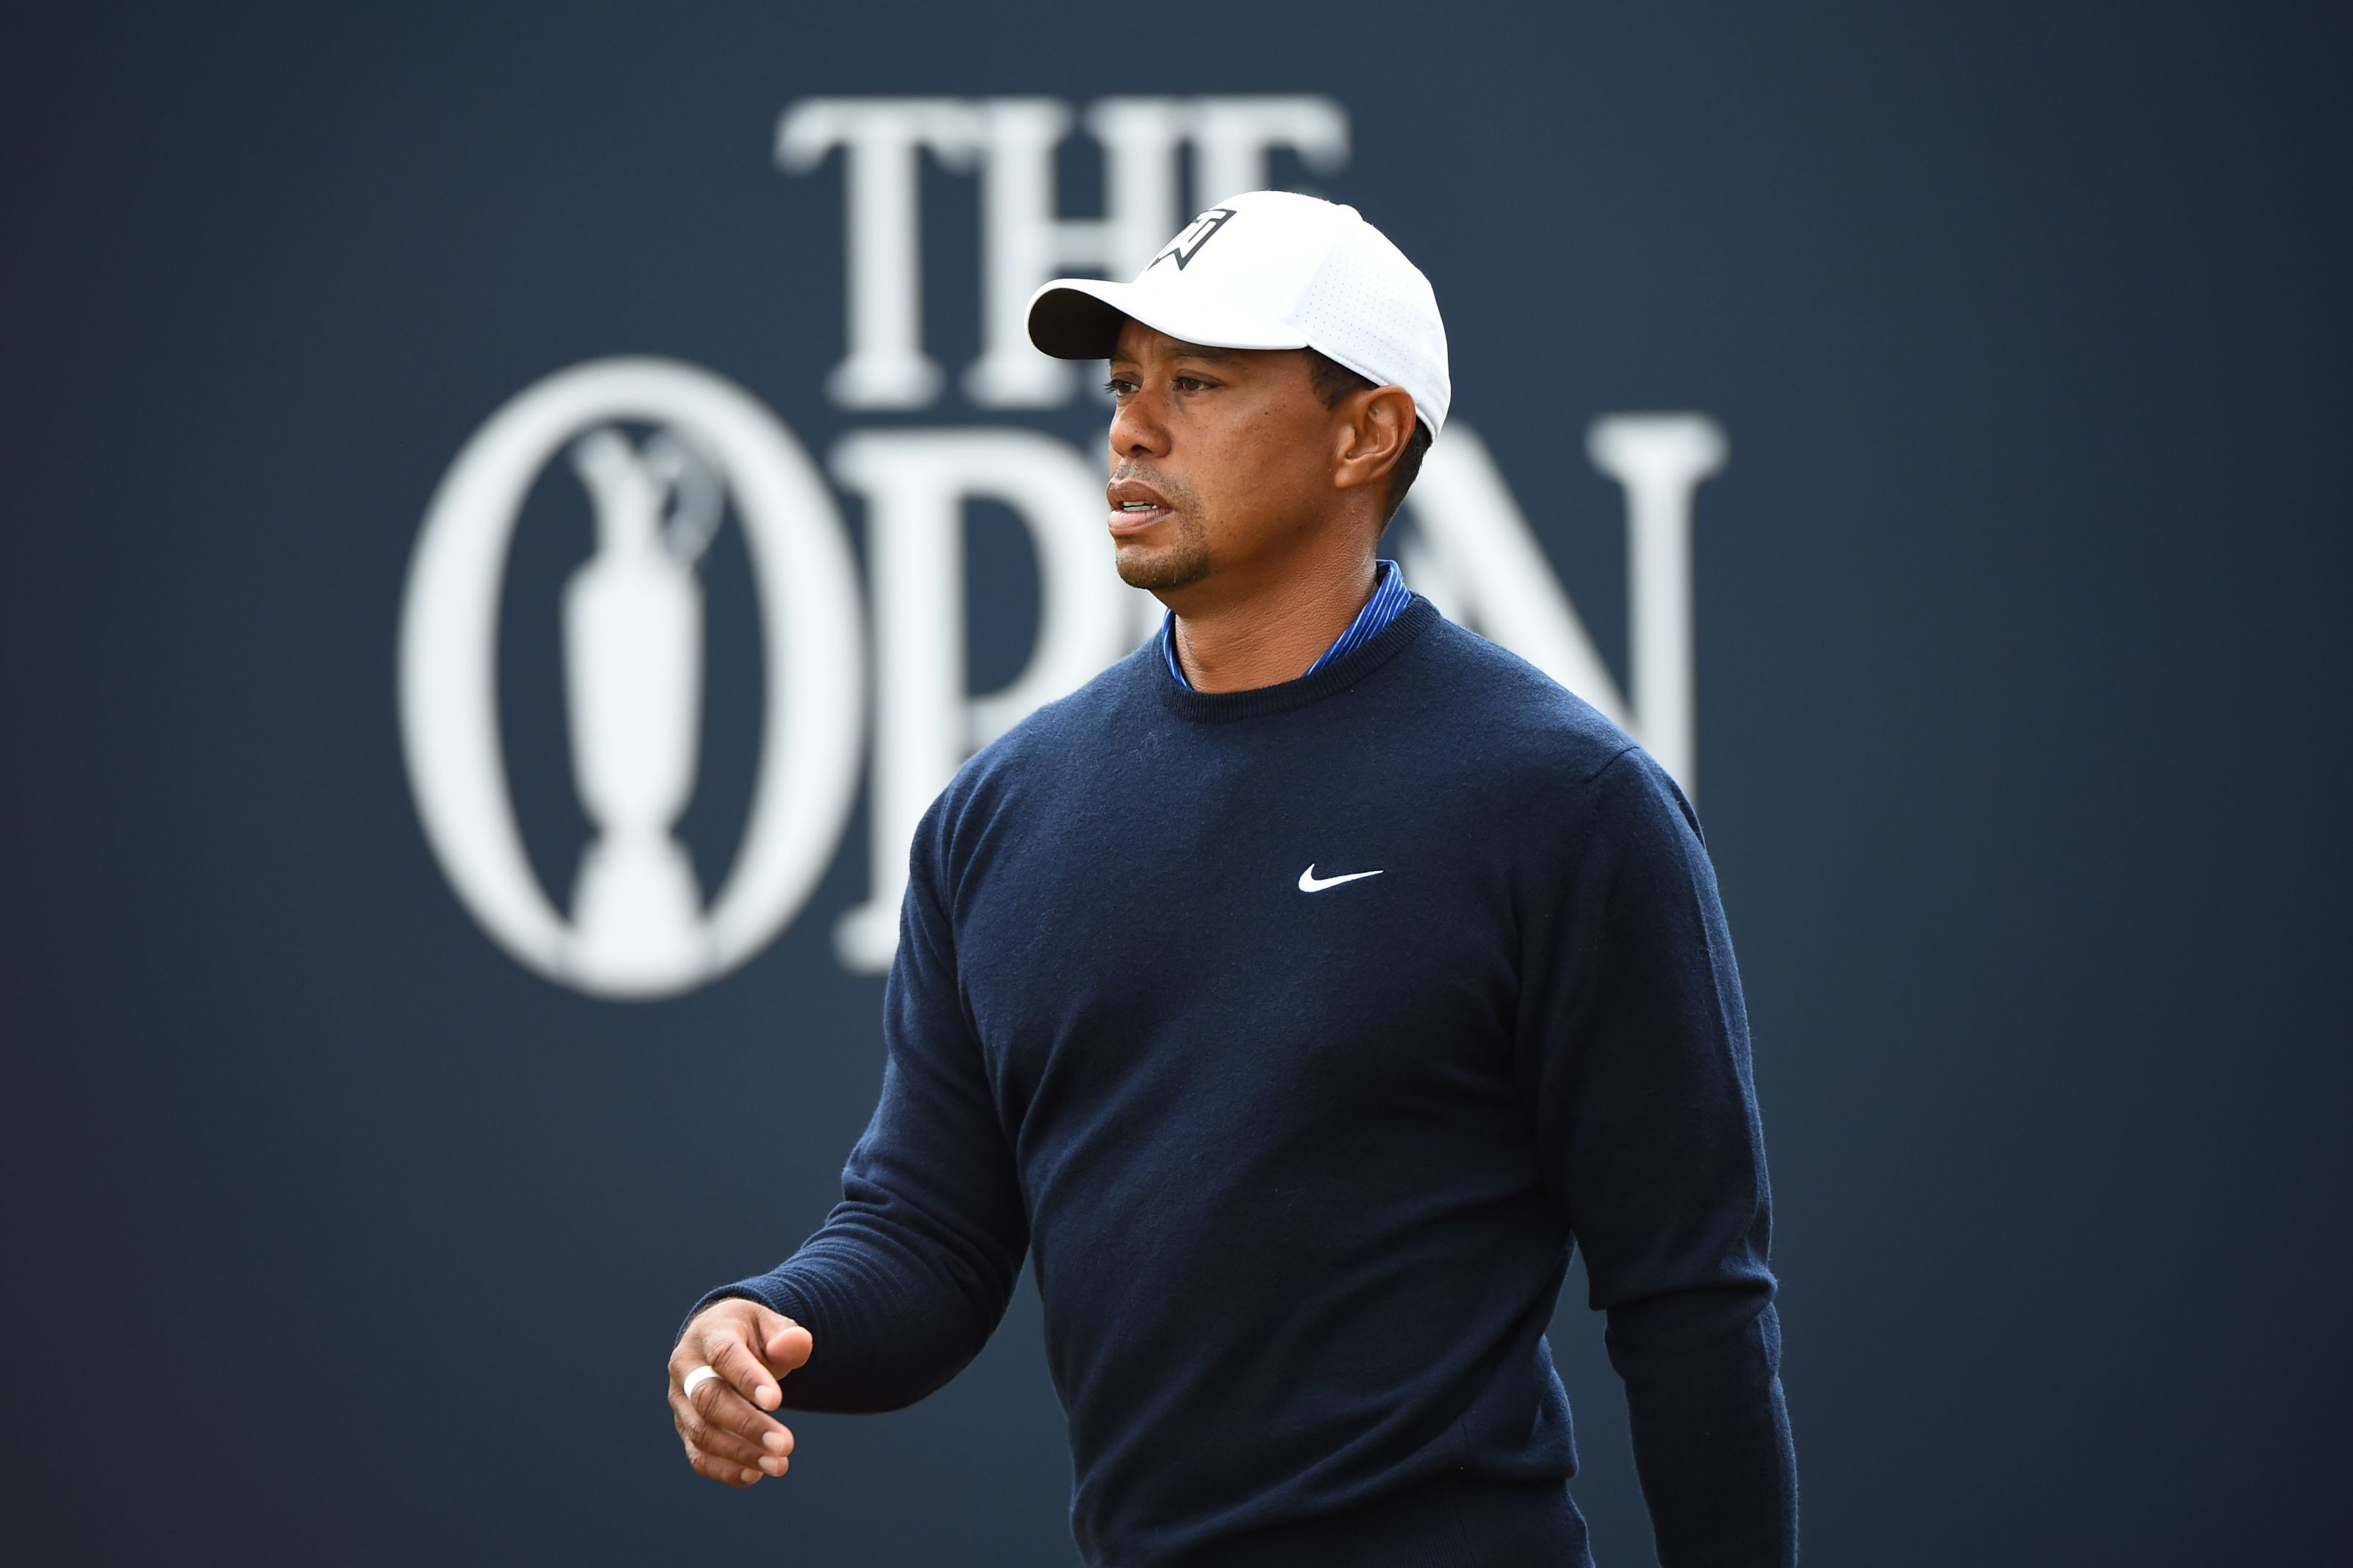 US golfer Tiger Woods walks from the 1st tee during a practice round at The 147th Open golf Championship at Carnoustie, Scotland on July 17, 2018. (Photo by ANDY BUCHANAN / AFP) (Photo credit should read ANDY BUCHANAN/AFP/Getty Images)